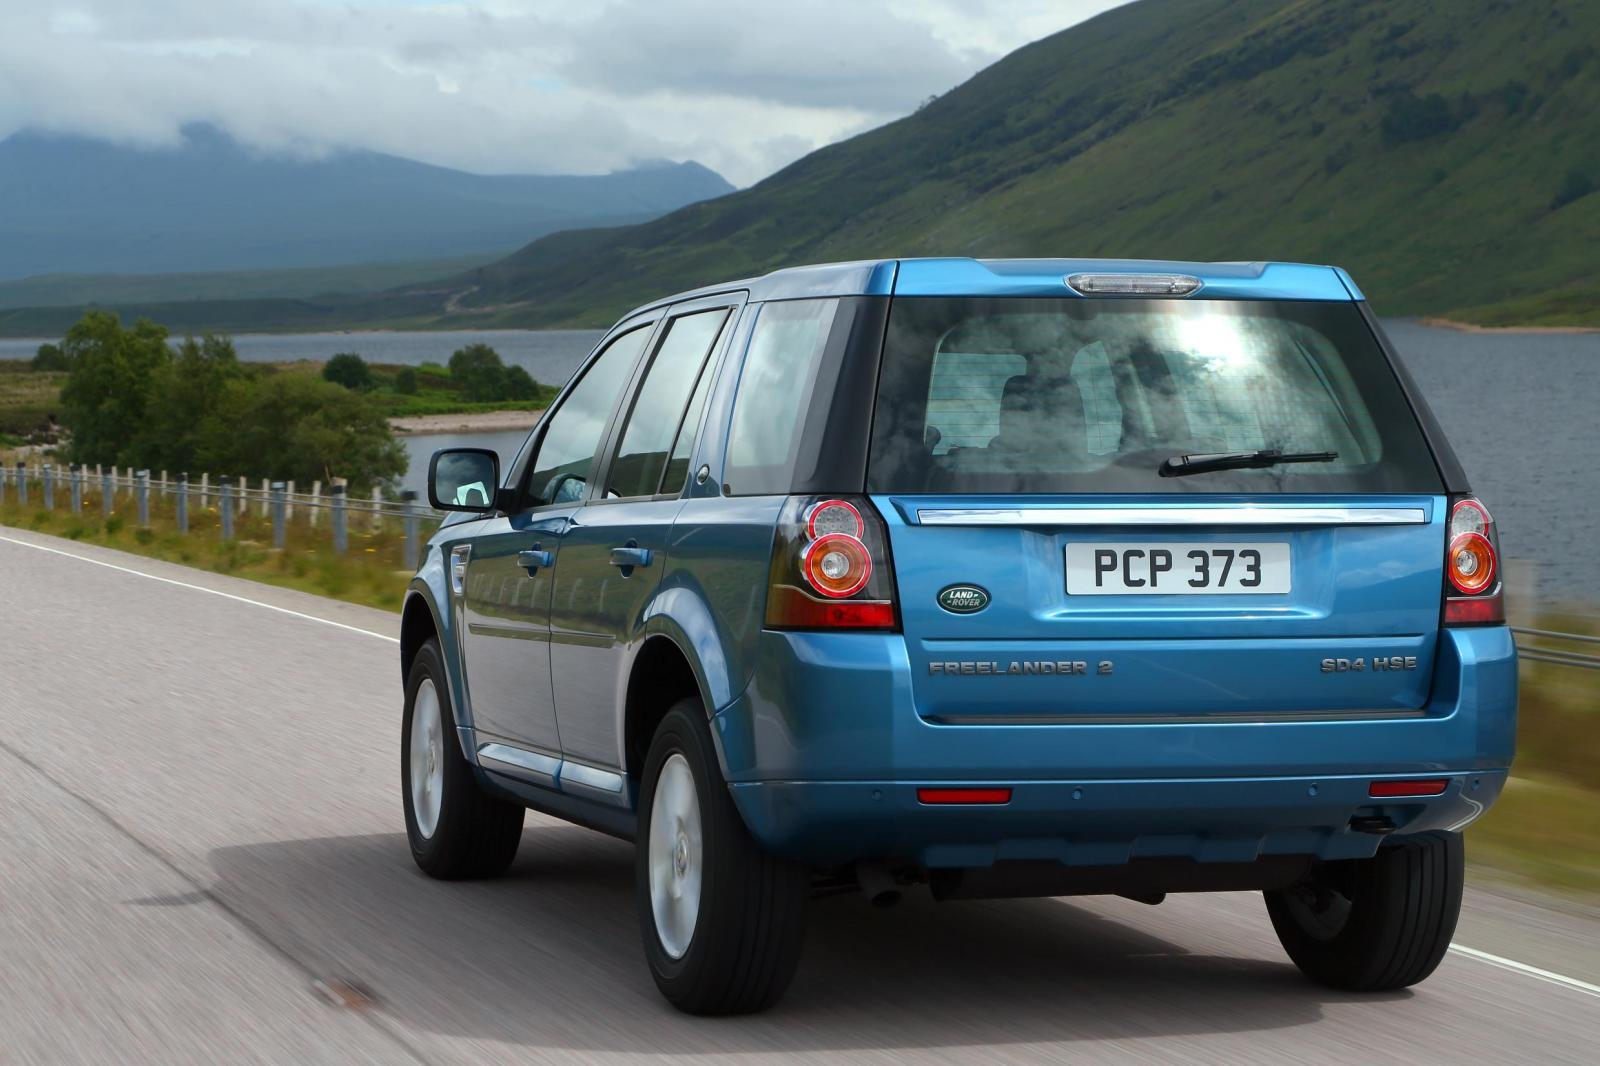 2013 Land Rover Freelander 2 rear view